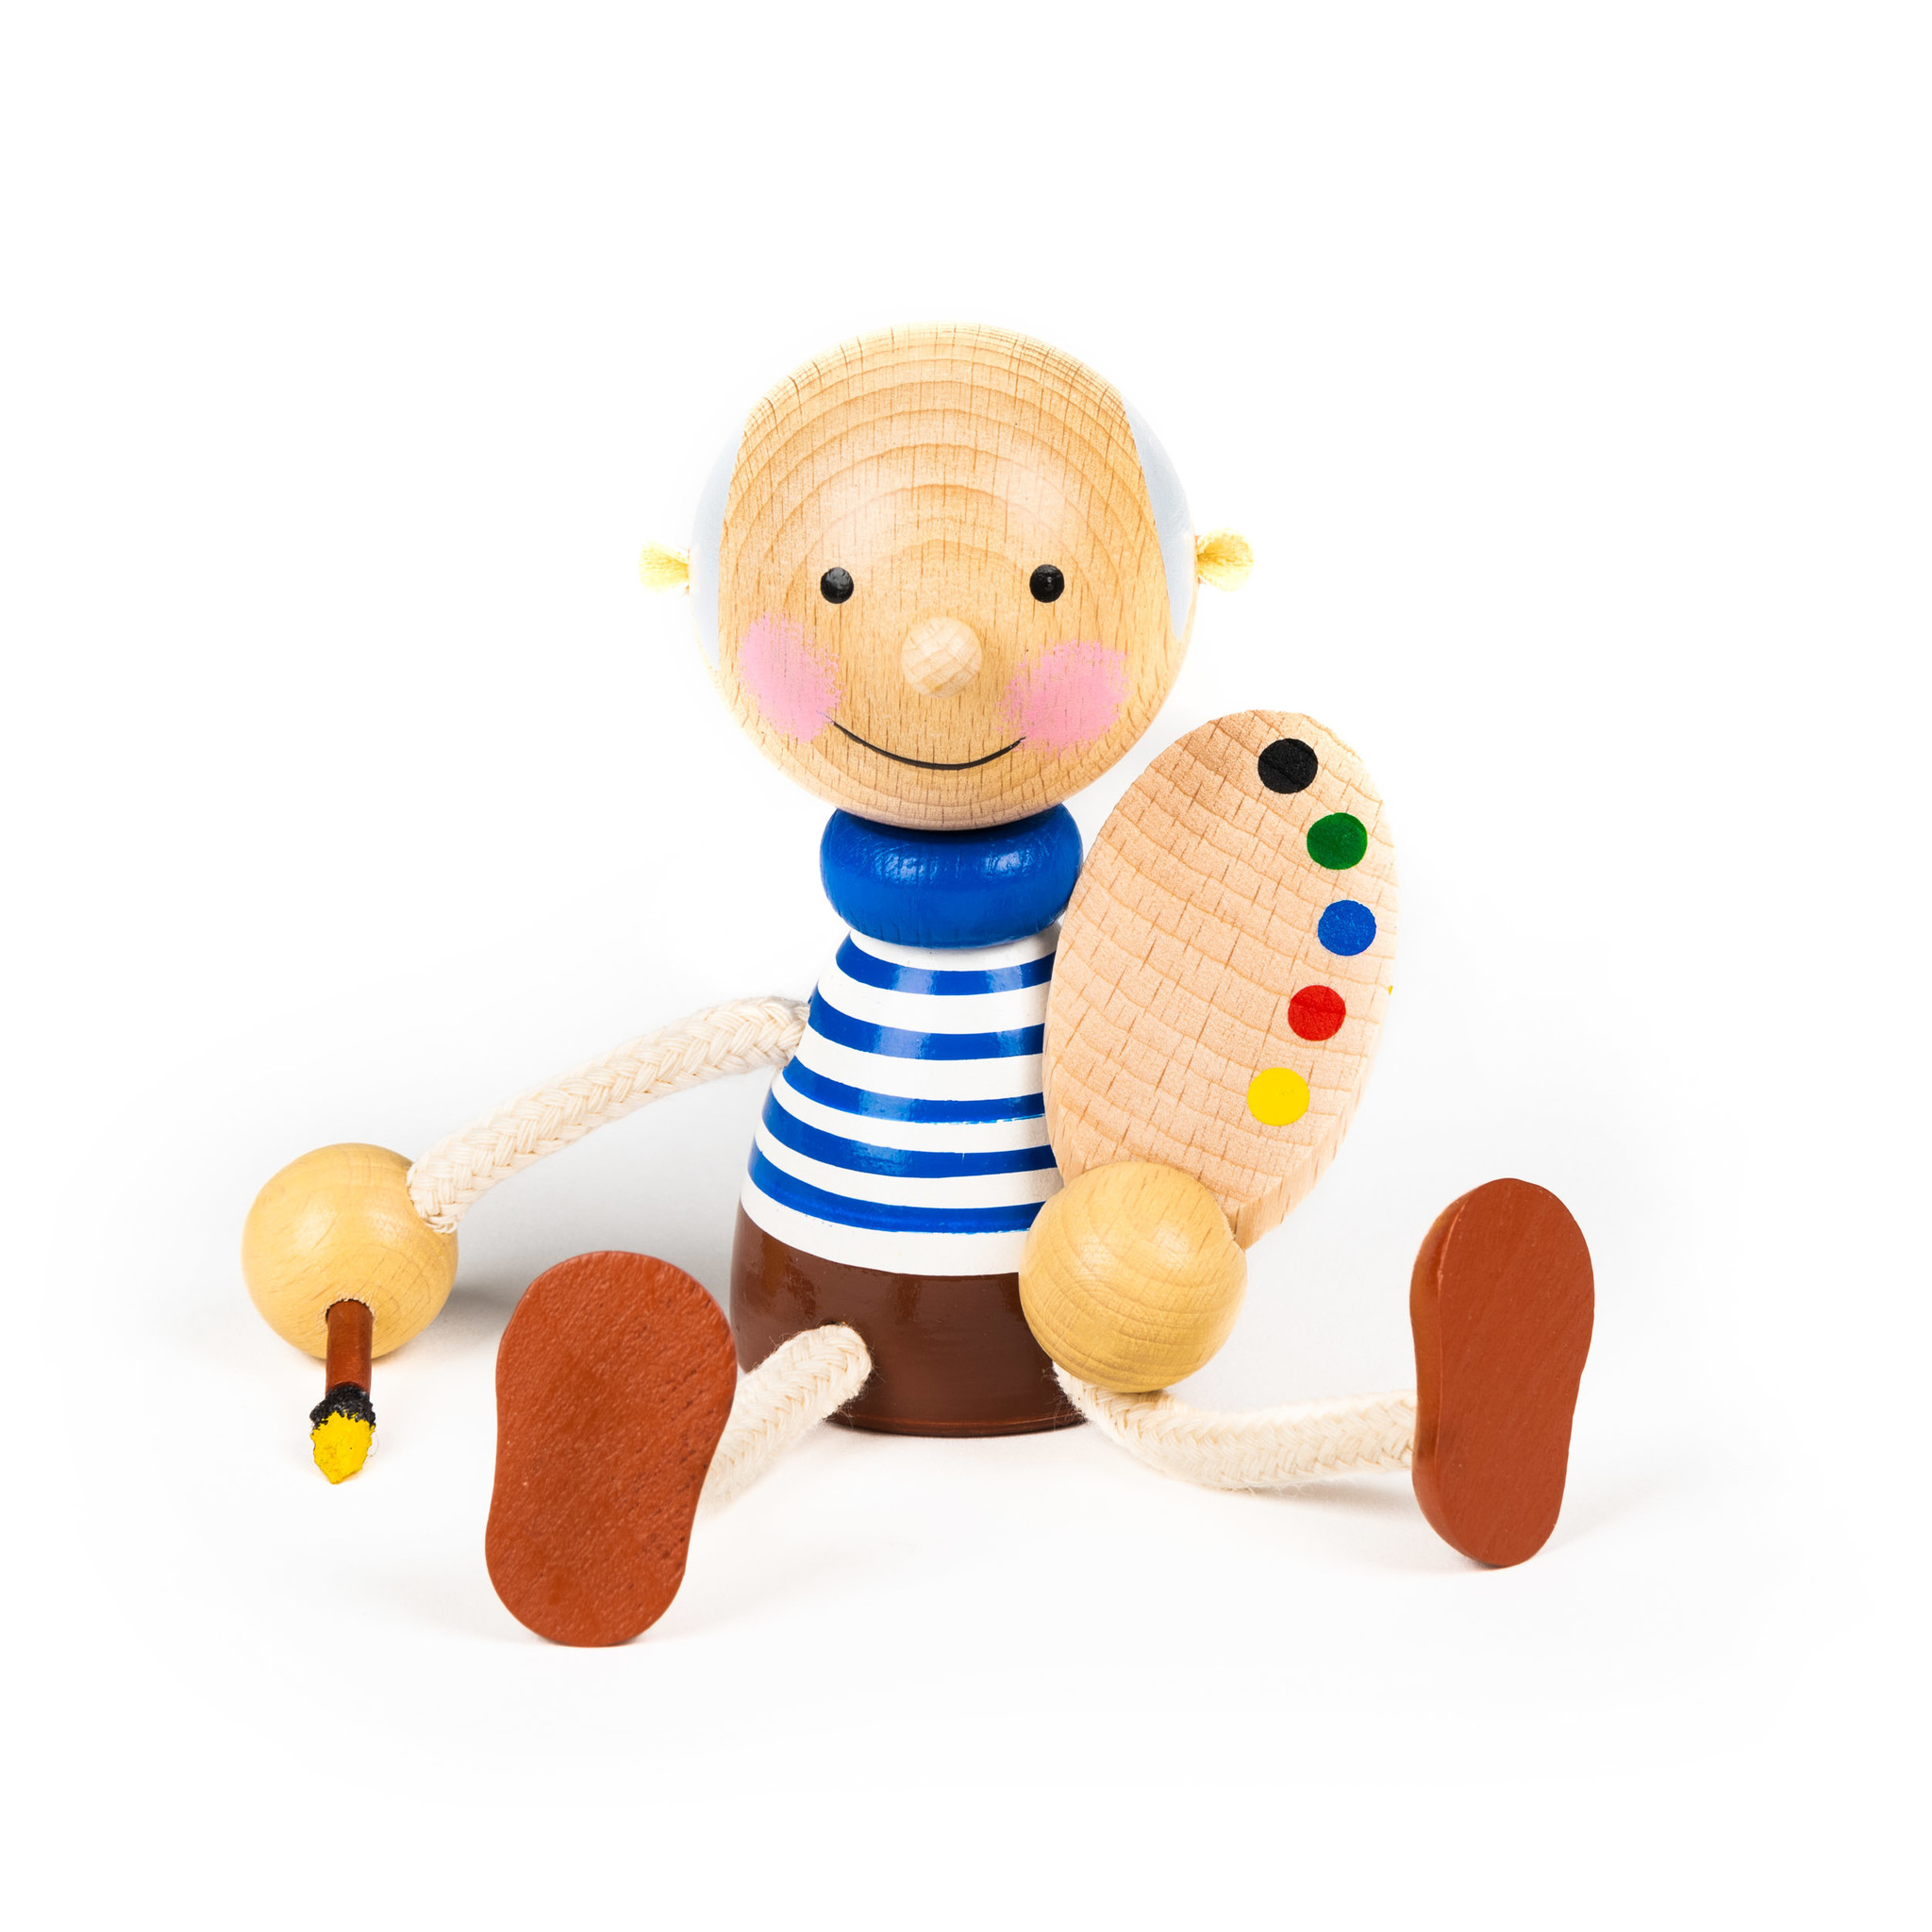 Wooden doll Picasso